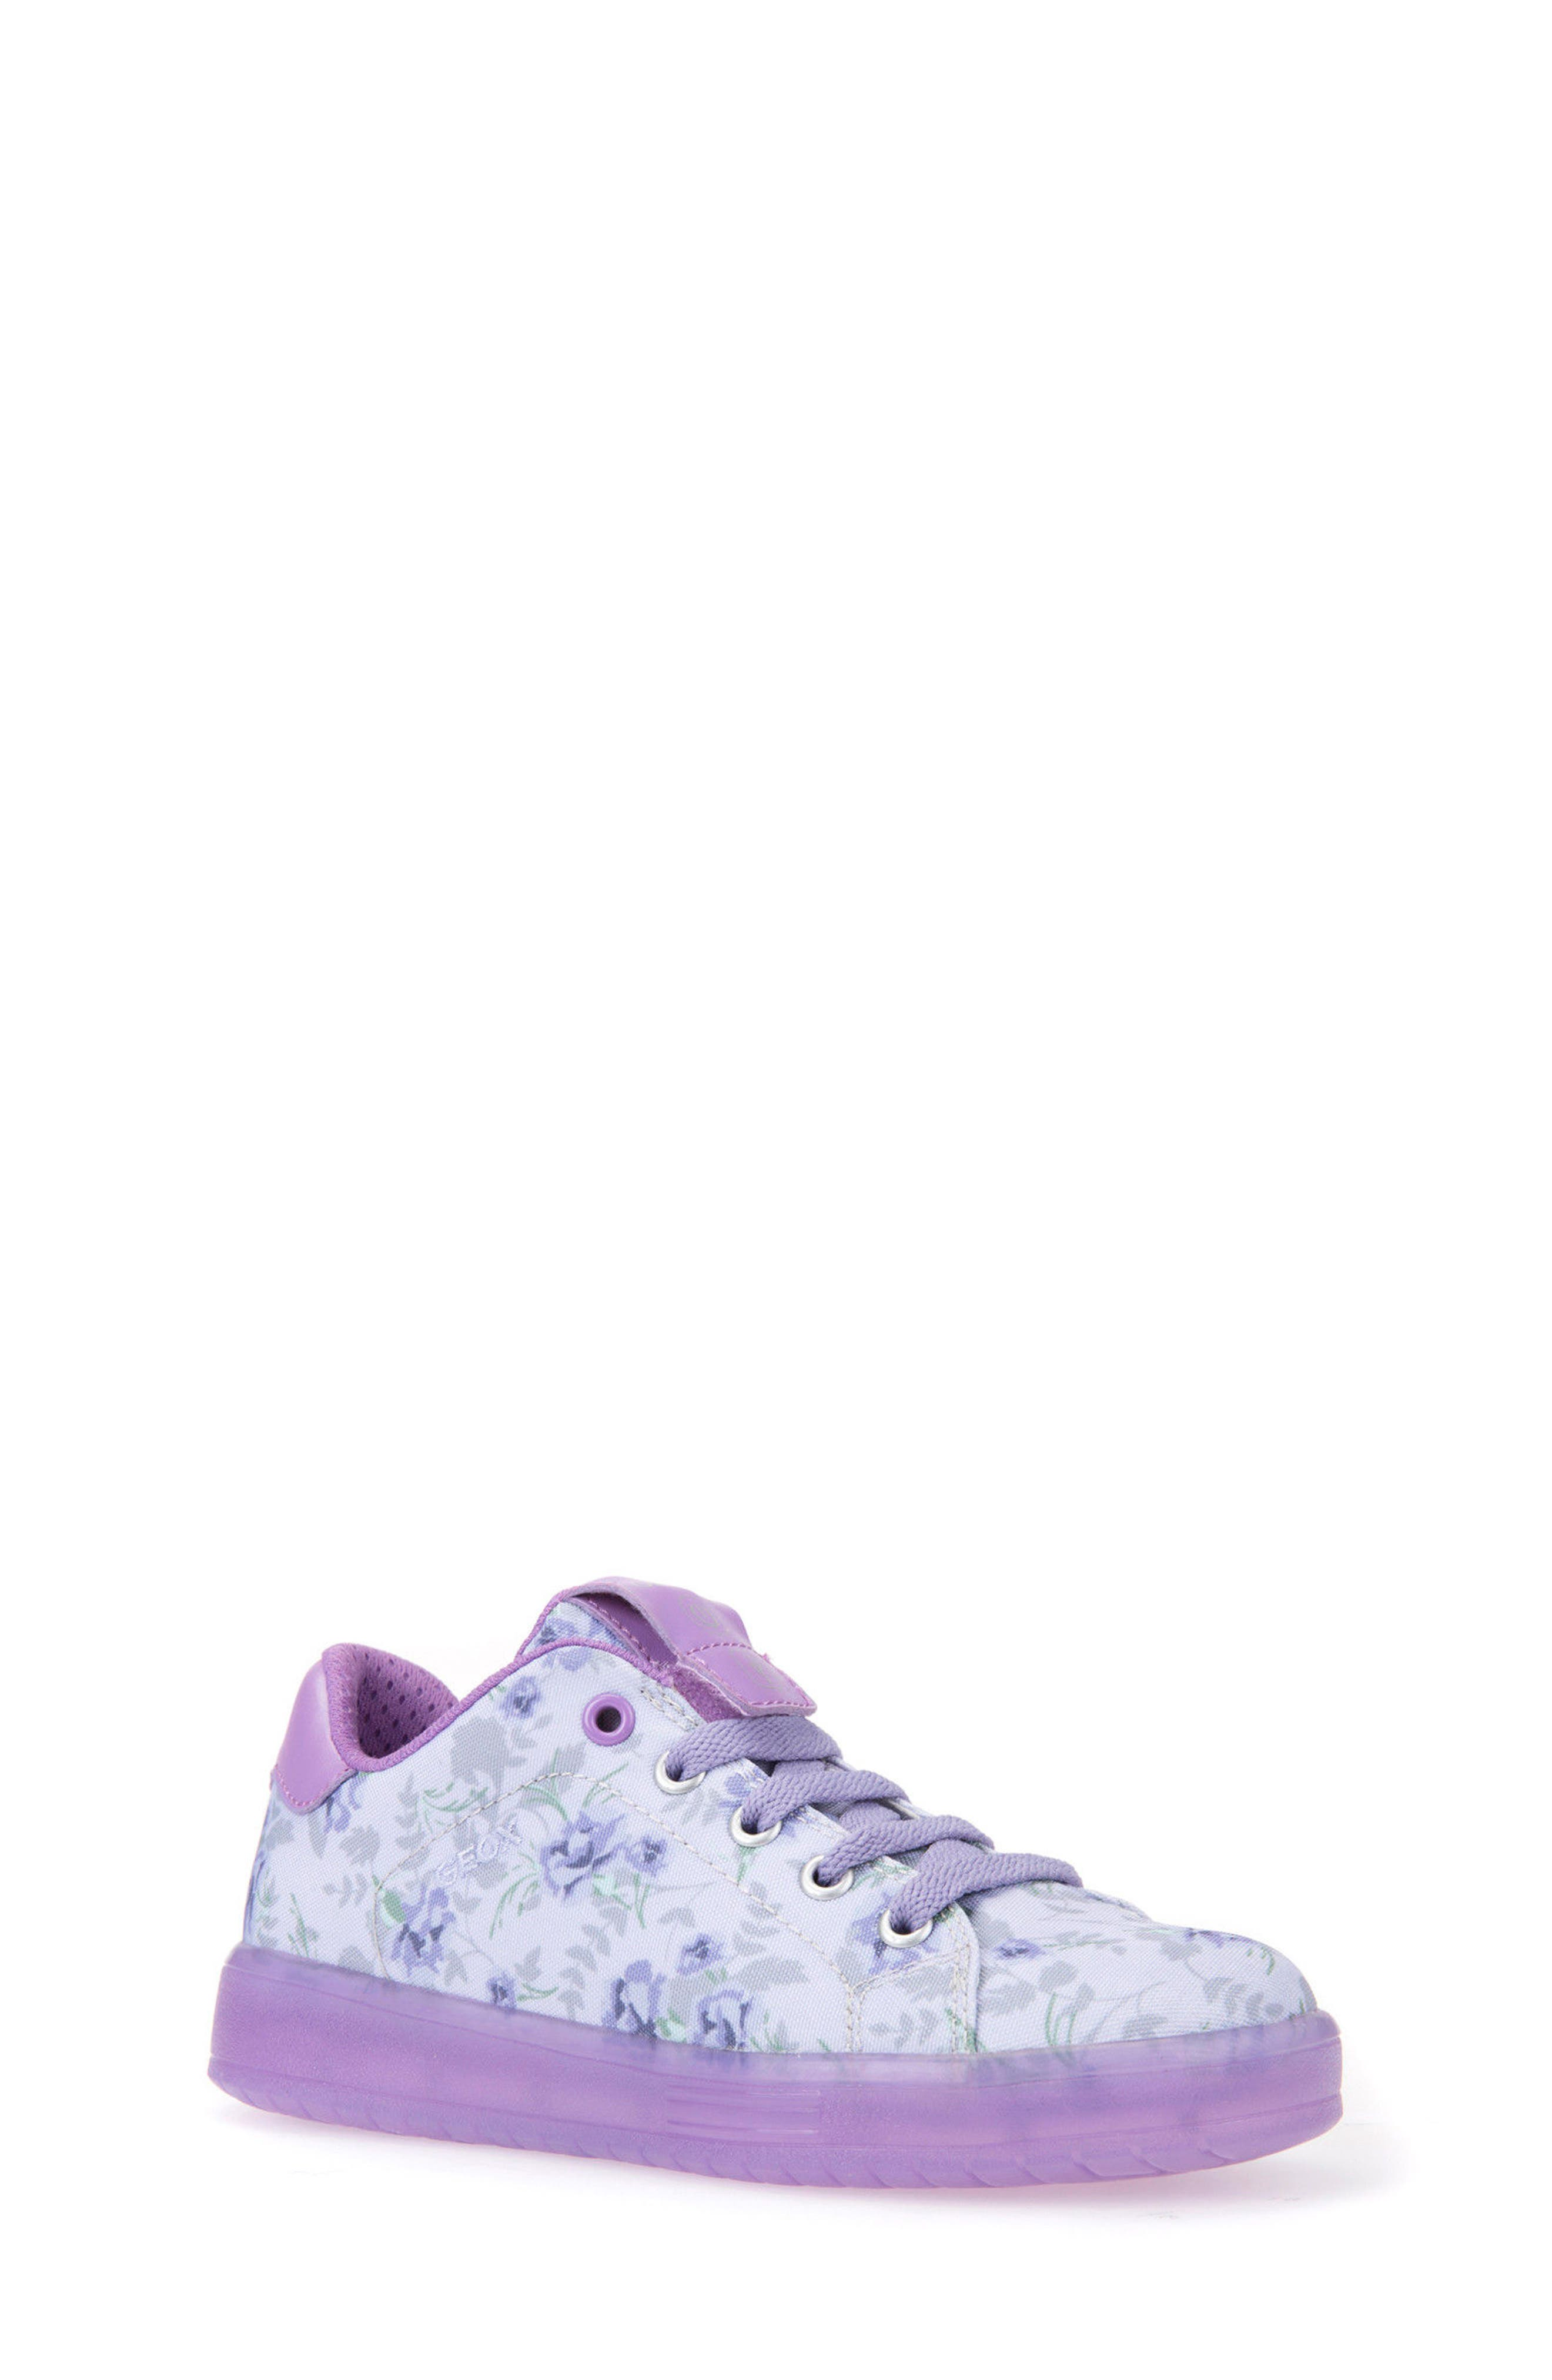 Kommodor Light-Up Sneaker,                             Main thumbnail 1, color,                             LIGHT LILAC/ LILAC